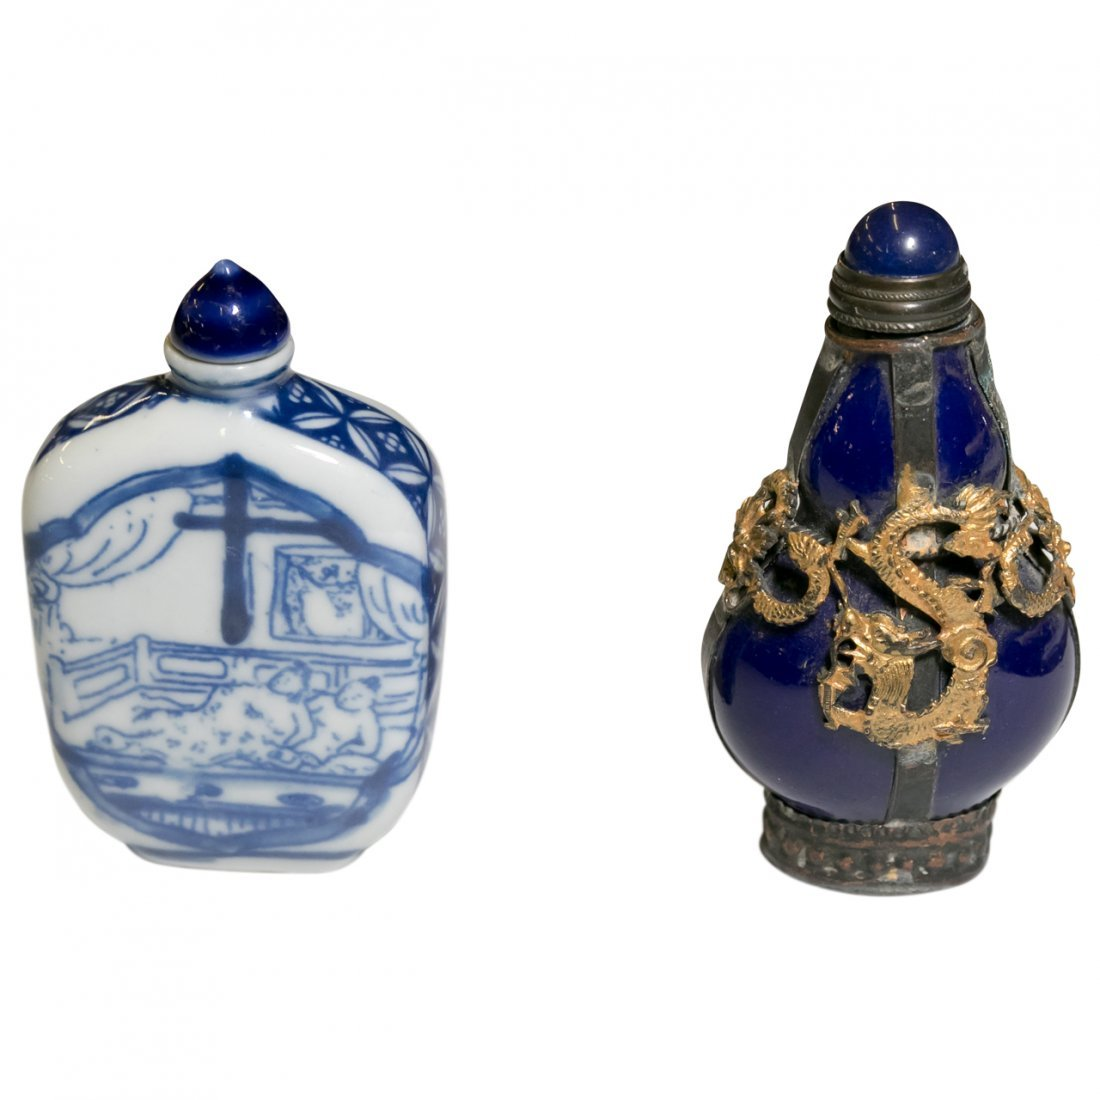 3 Antique Chinese Snuff Bottles - 4